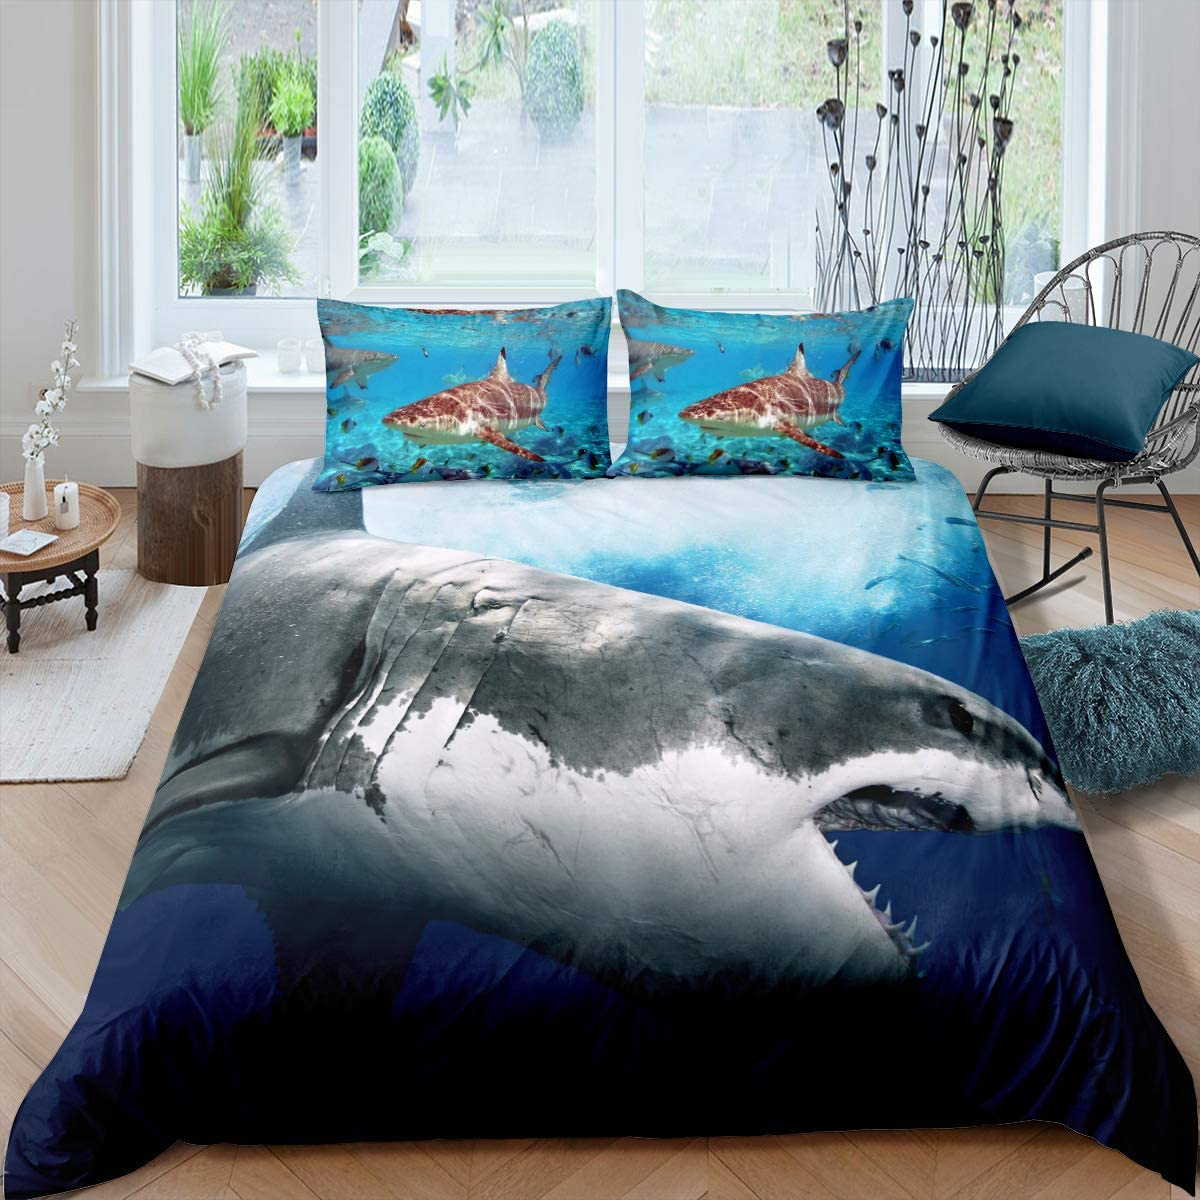 3d Shark Fish Bedding Duvet Cover Full 3 Piece Hawaiian Beach Theme Bedding Set Underwater Children Bedspread Cover Ocean Sea Themed Pattern Printed On Blue Comforter Cover For Kid Boy Girls